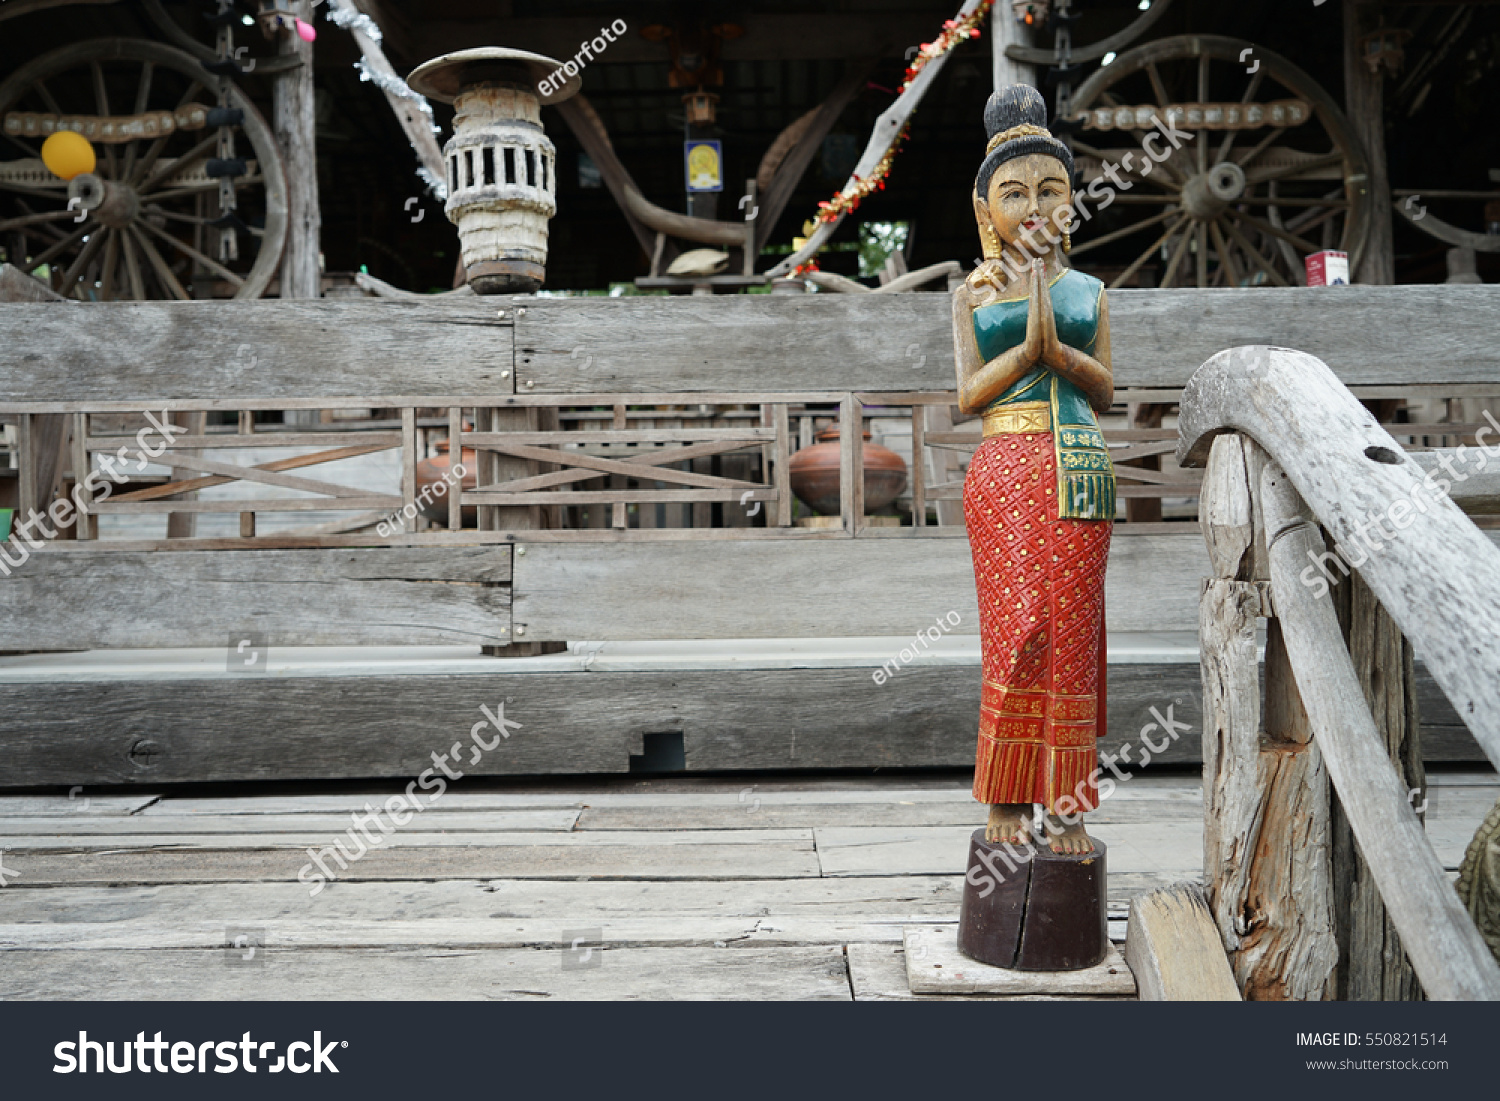 Wooden Carving Representing Thai Greeting Posture Stock Photo Safe